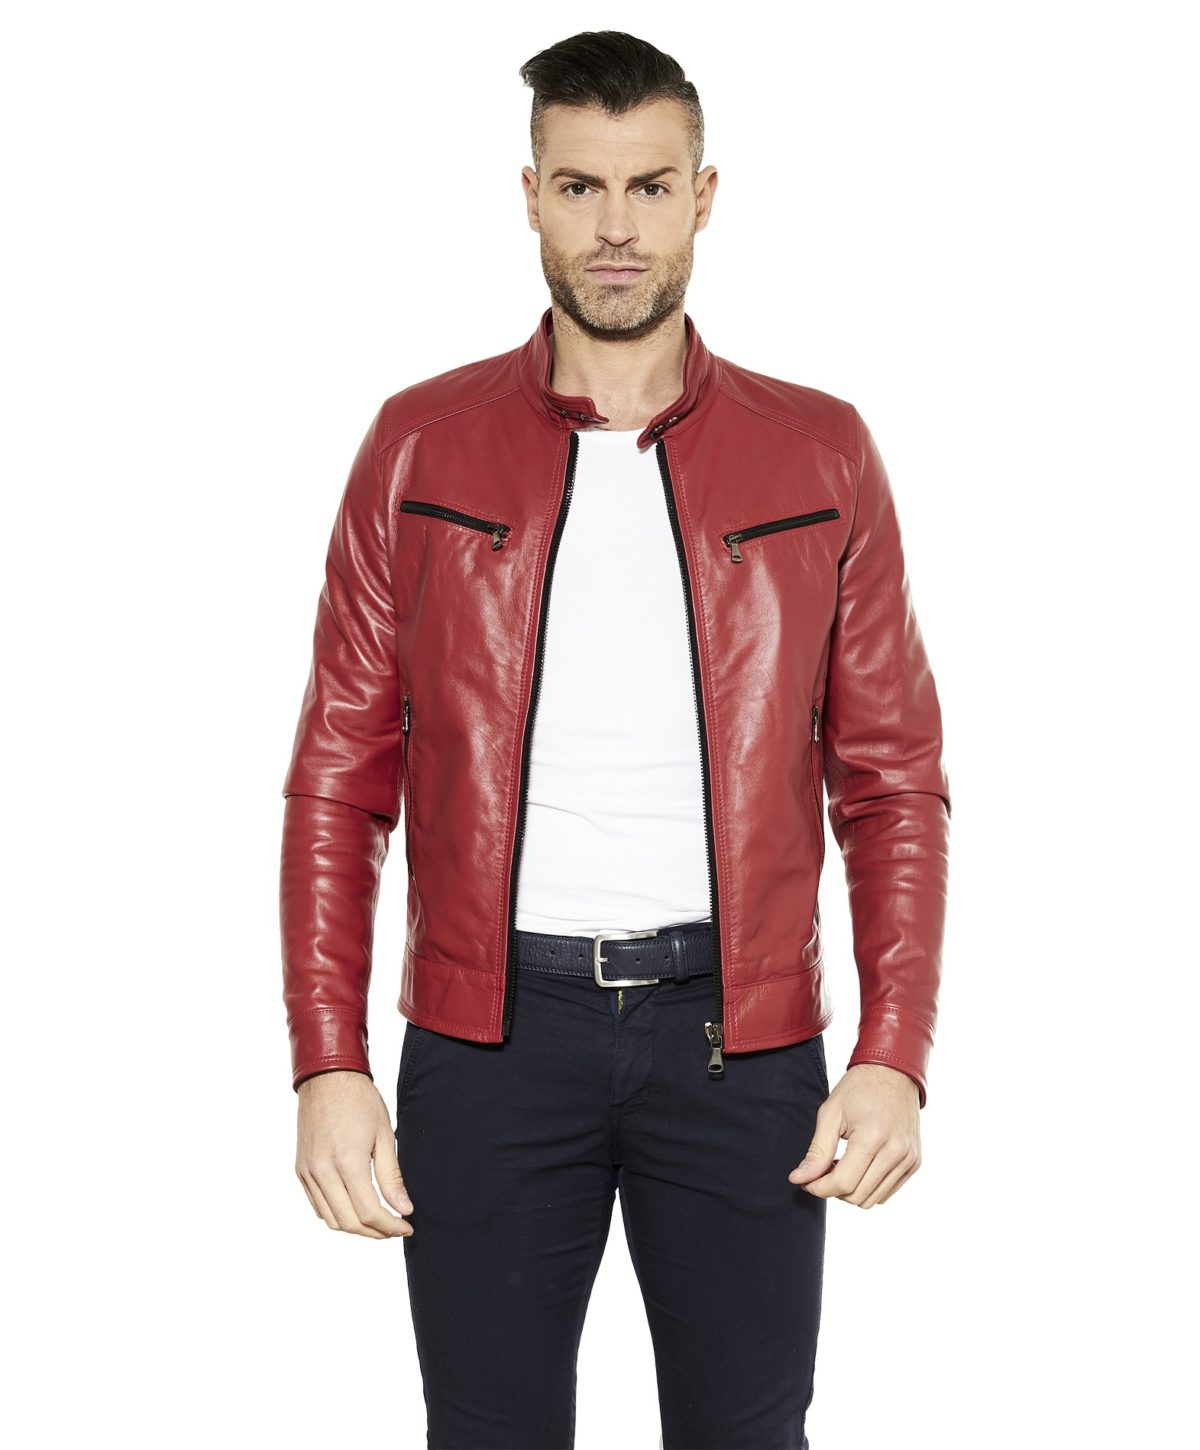 men-s-leather-jacket-genuine-soft-leather-biker-style-collar-mao-red-color-hamilton (2)